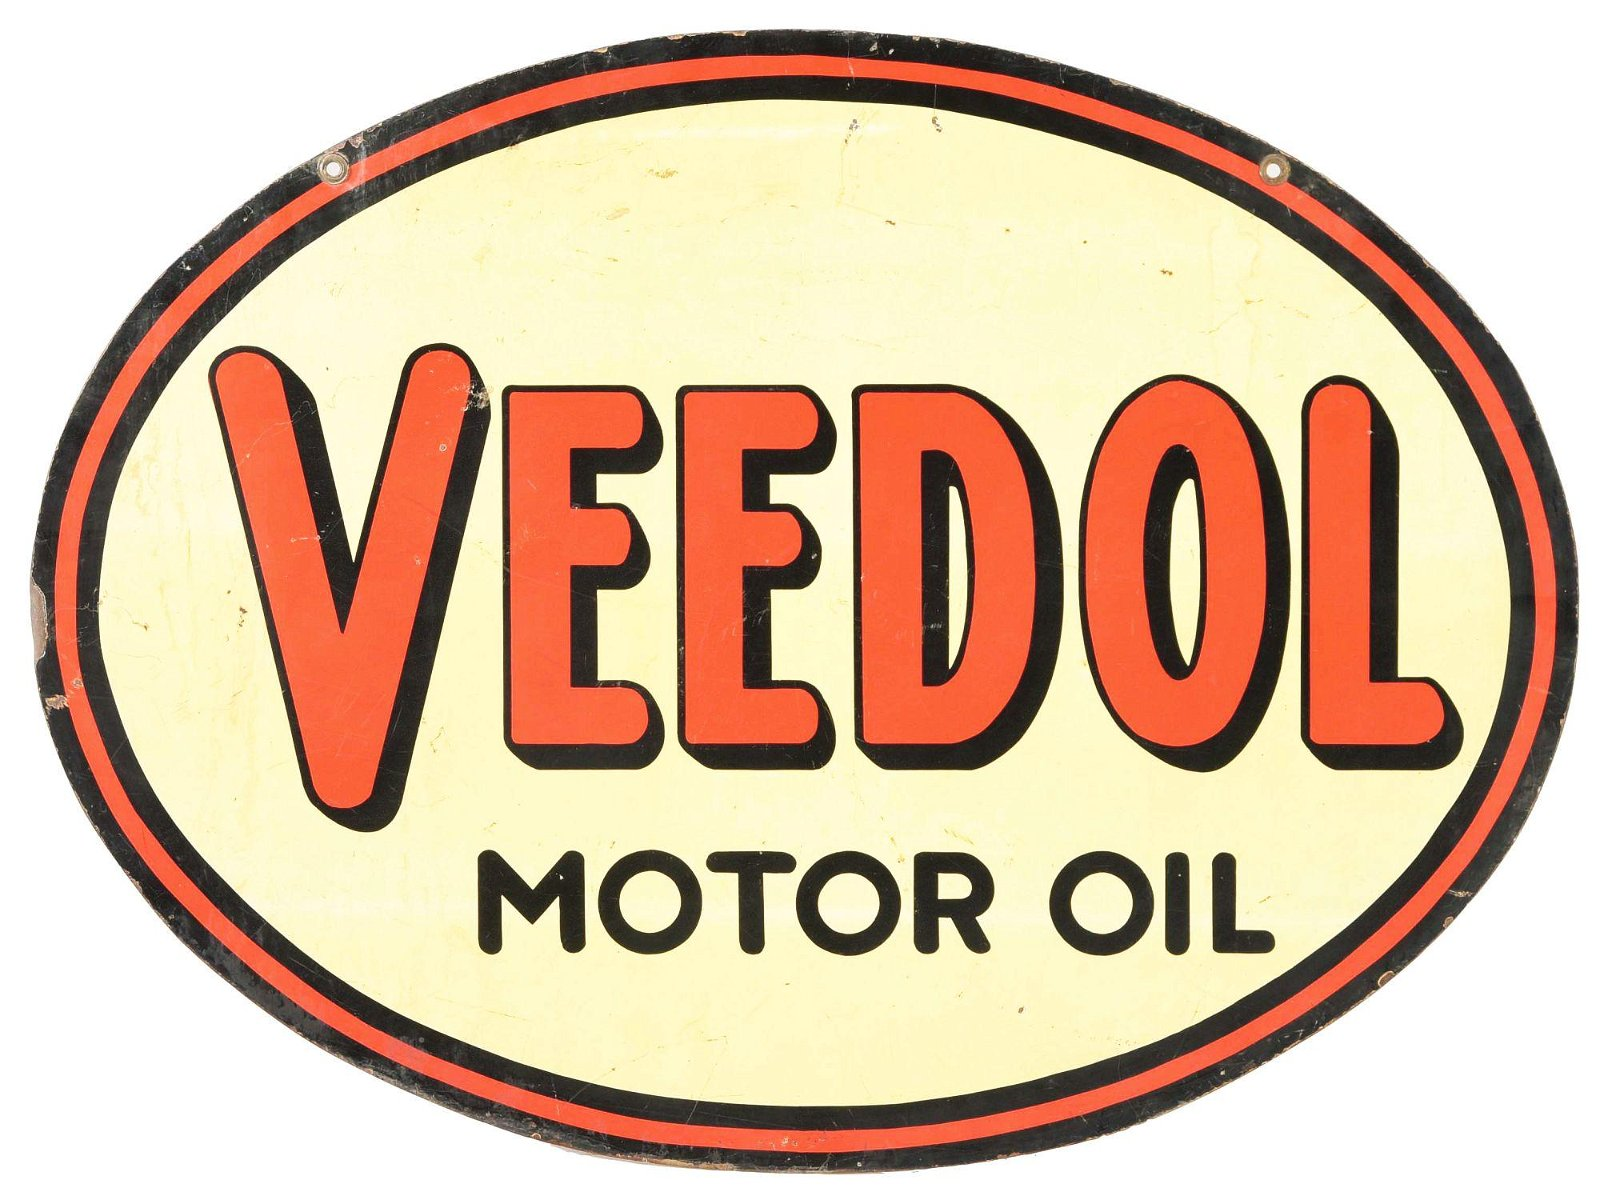 Veedol Motor Oils Tin Oval Sign.